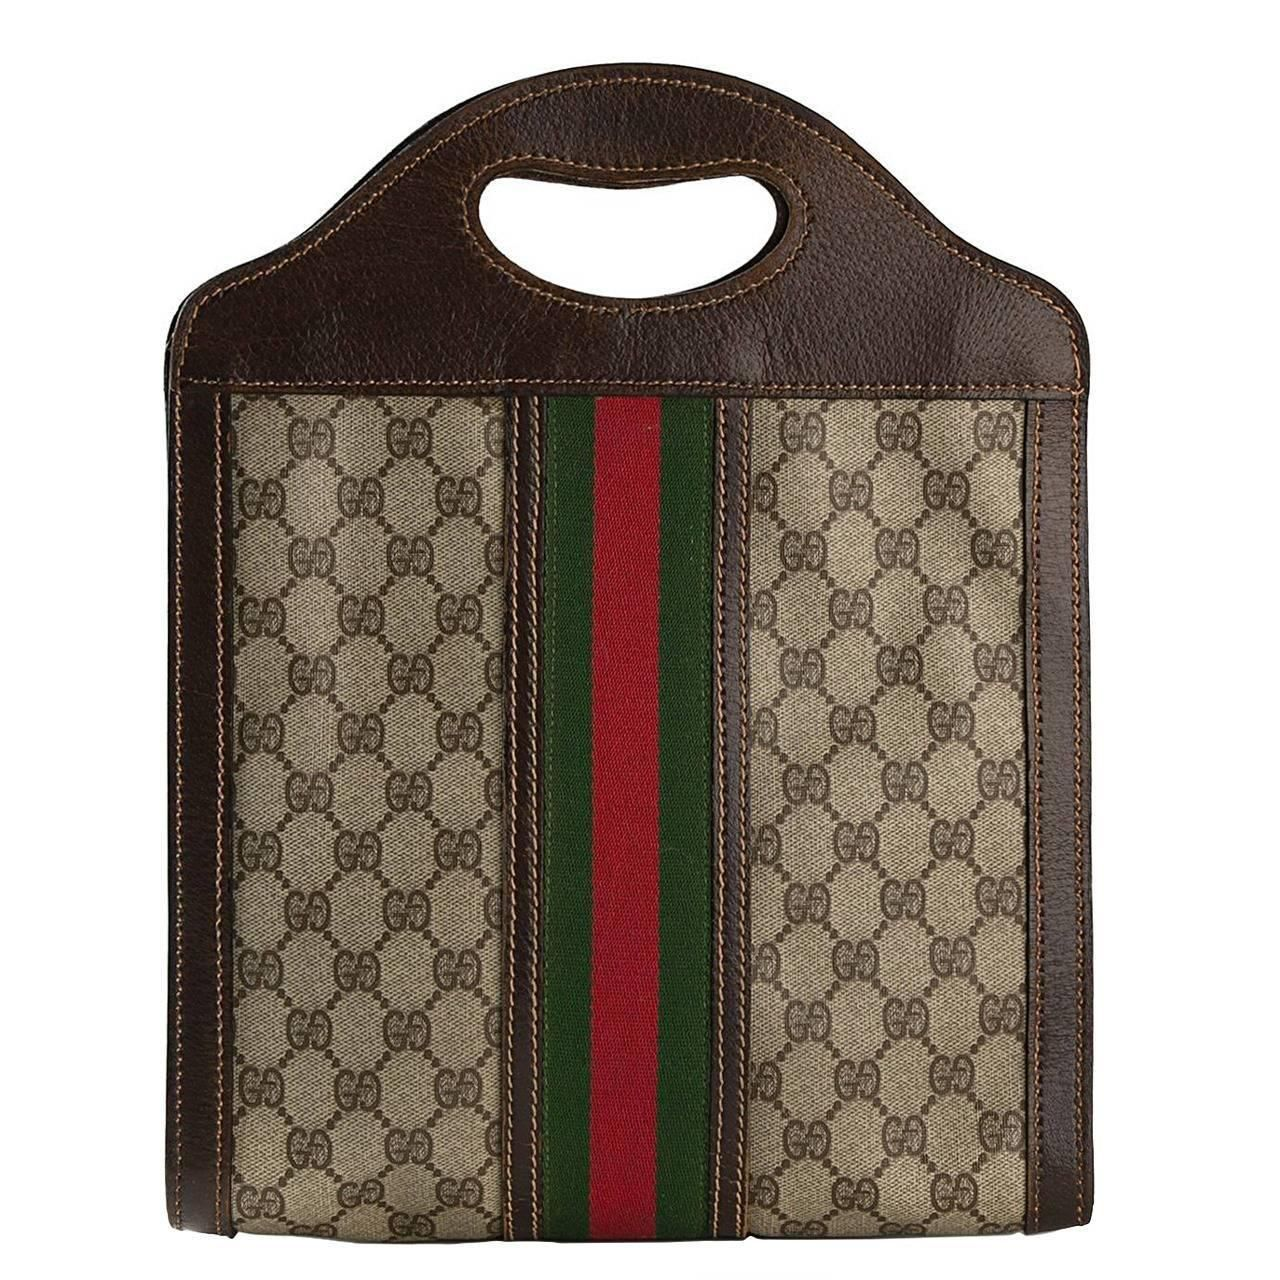 f1484322f236 1970s Gucci Tote Bag | From a collection of rare vintage tote bags at https: